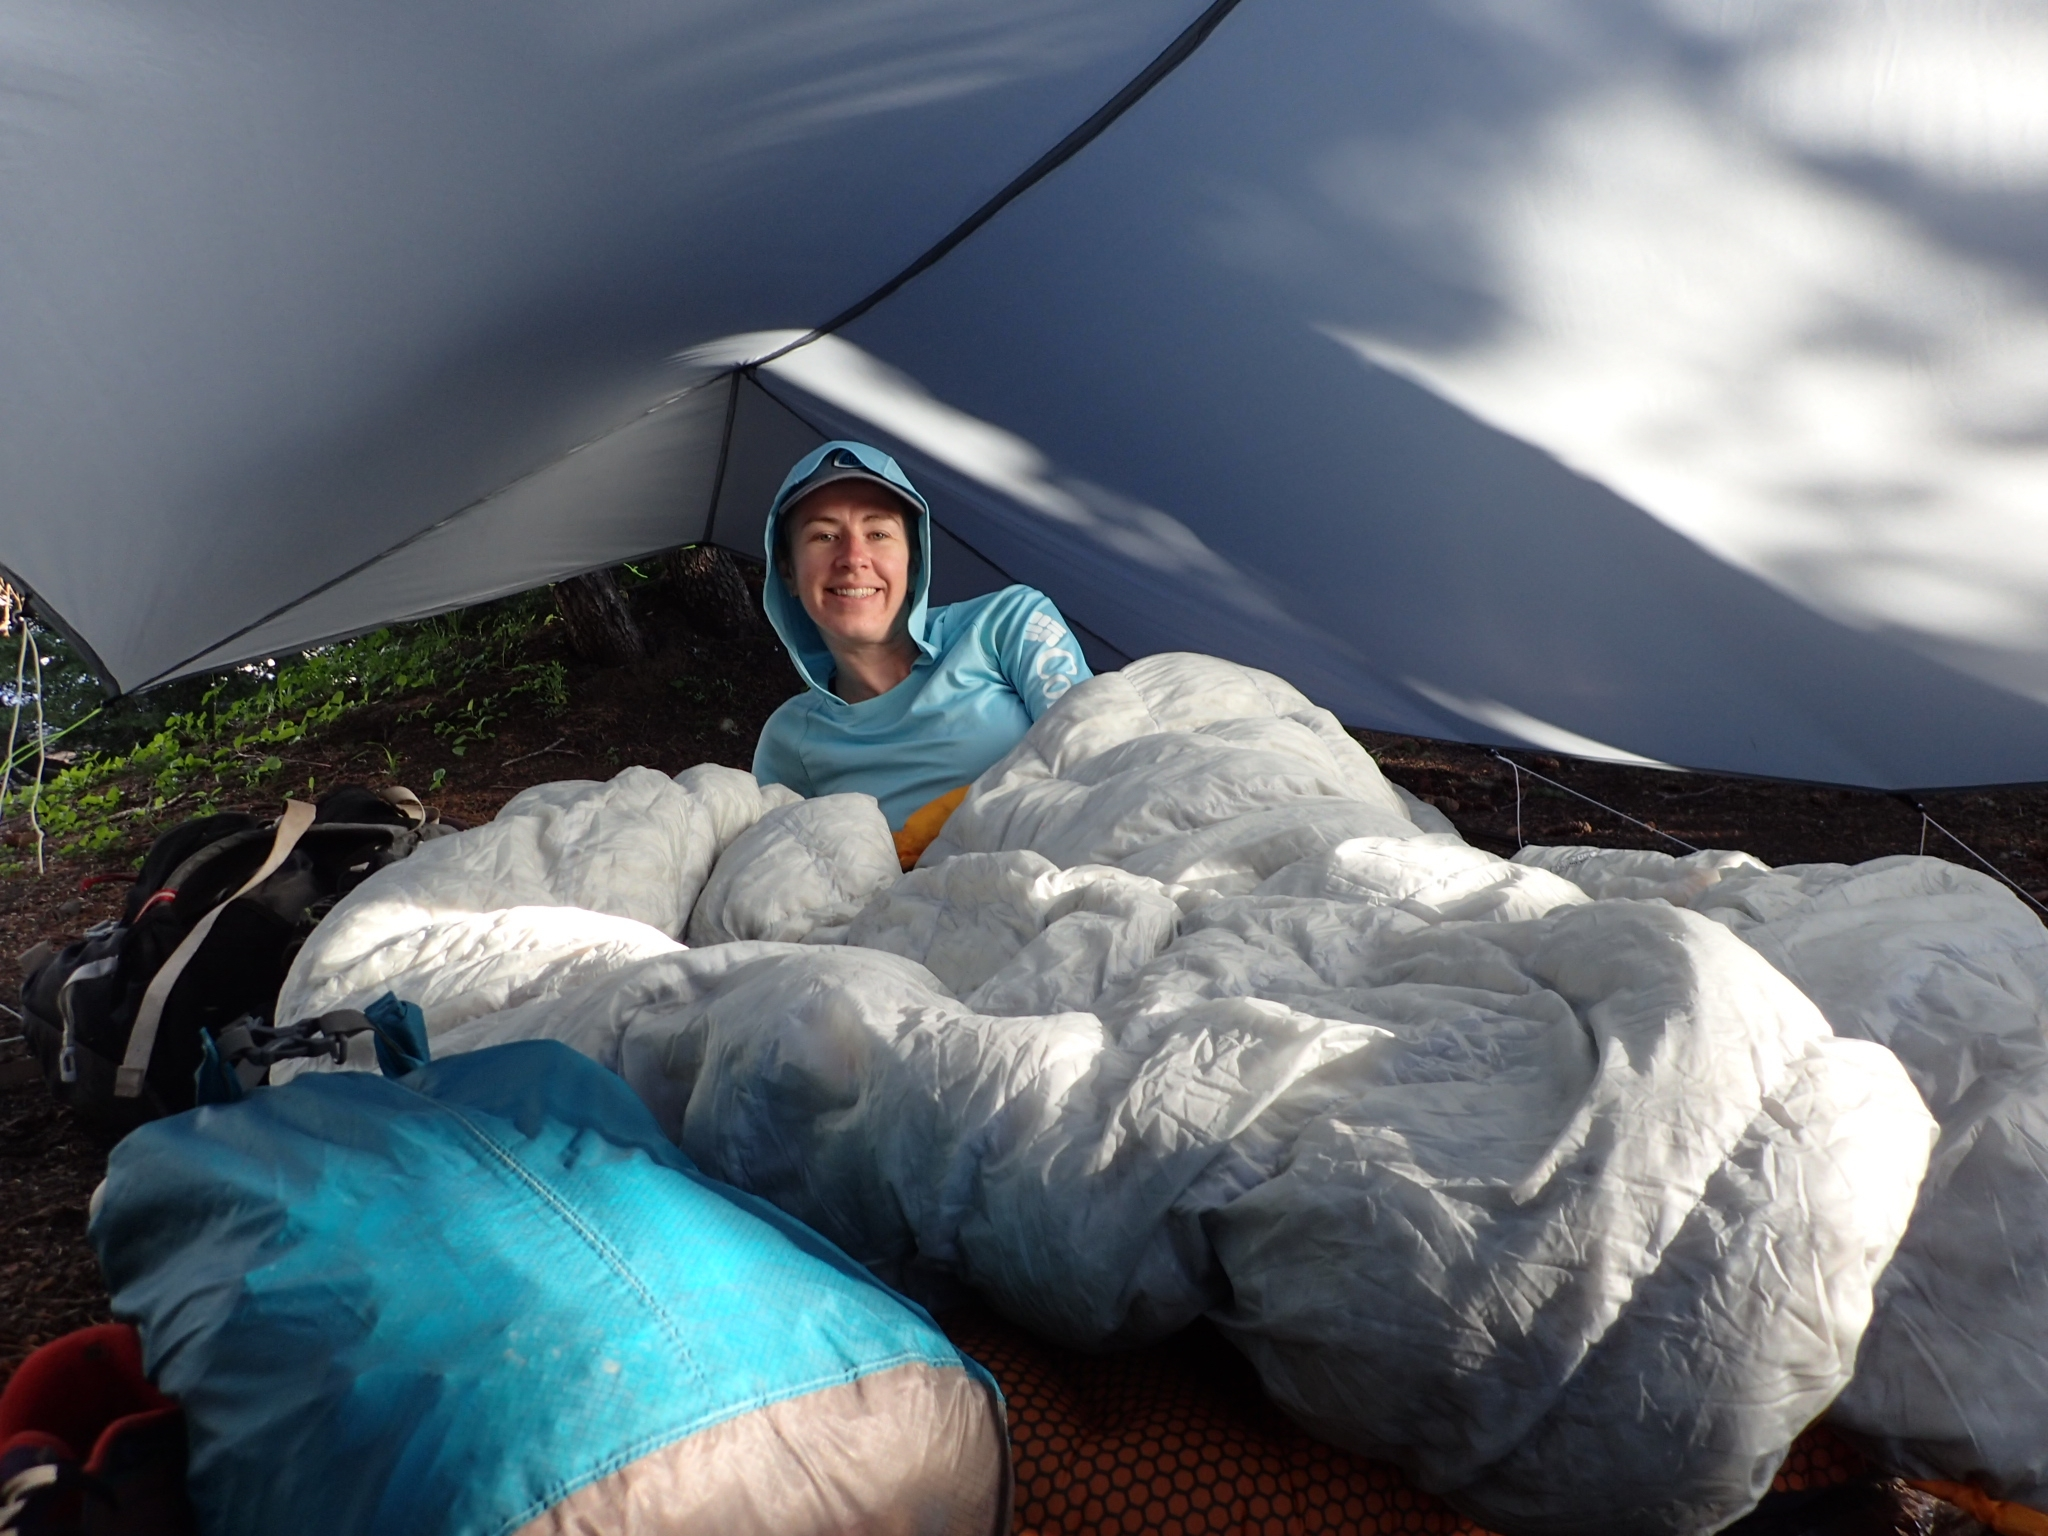 Gear Review: Sea to Summit Ember II 30 Down Quilt - The Trek